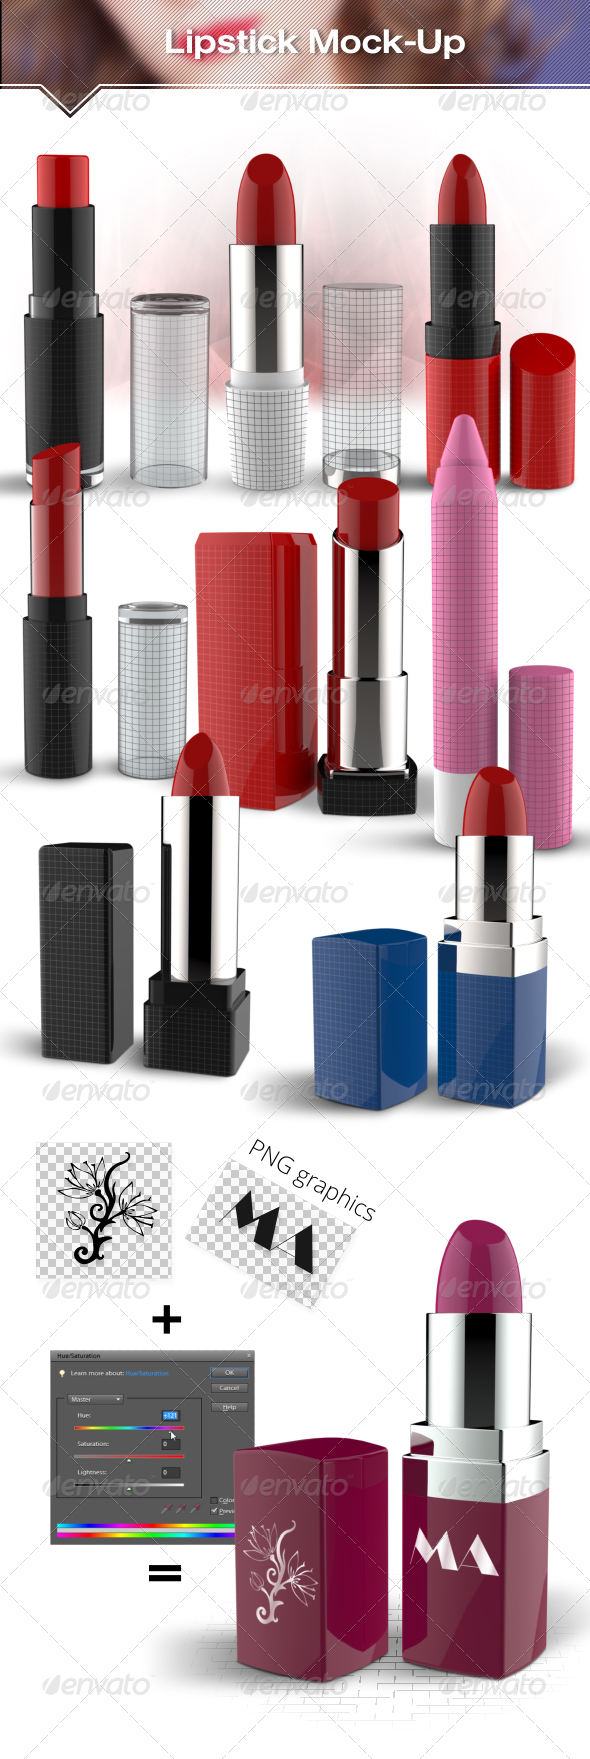 Lipstick Mockup - Beauty Packaging